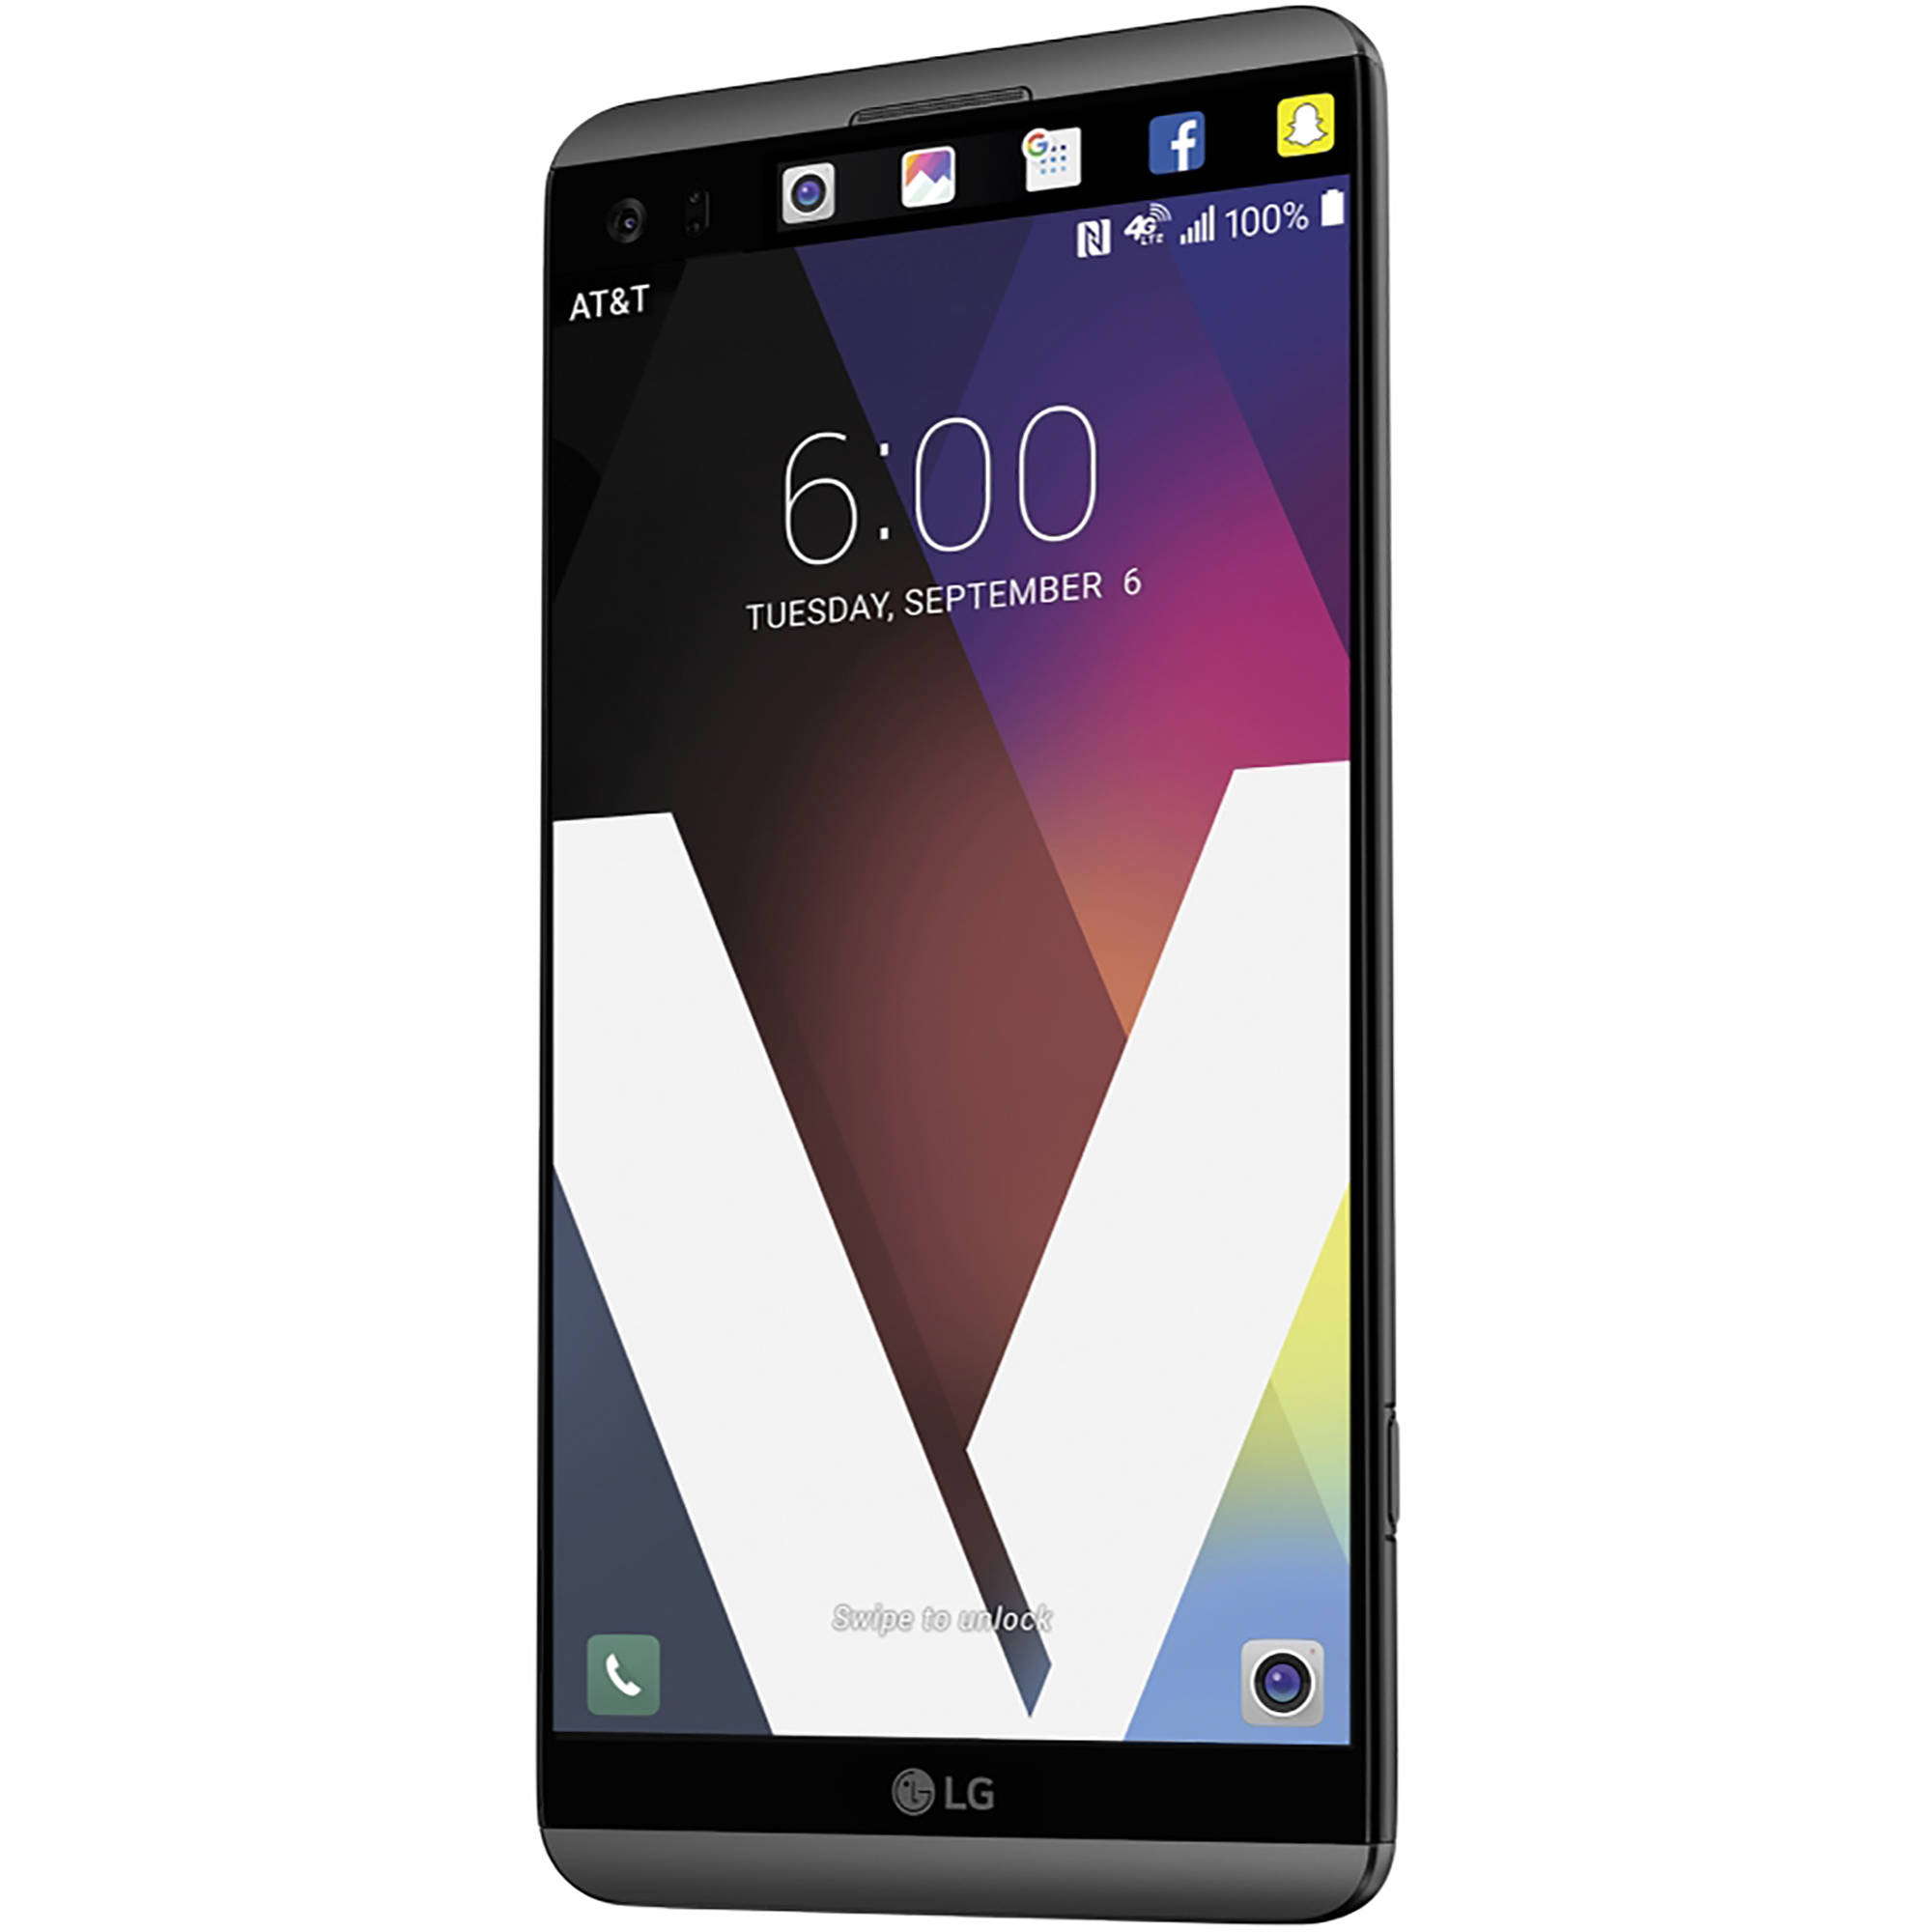 C cricket phones for sale existing customers - Lg V20 H910 64gb At T Branded Smartphone Unlocked Titan